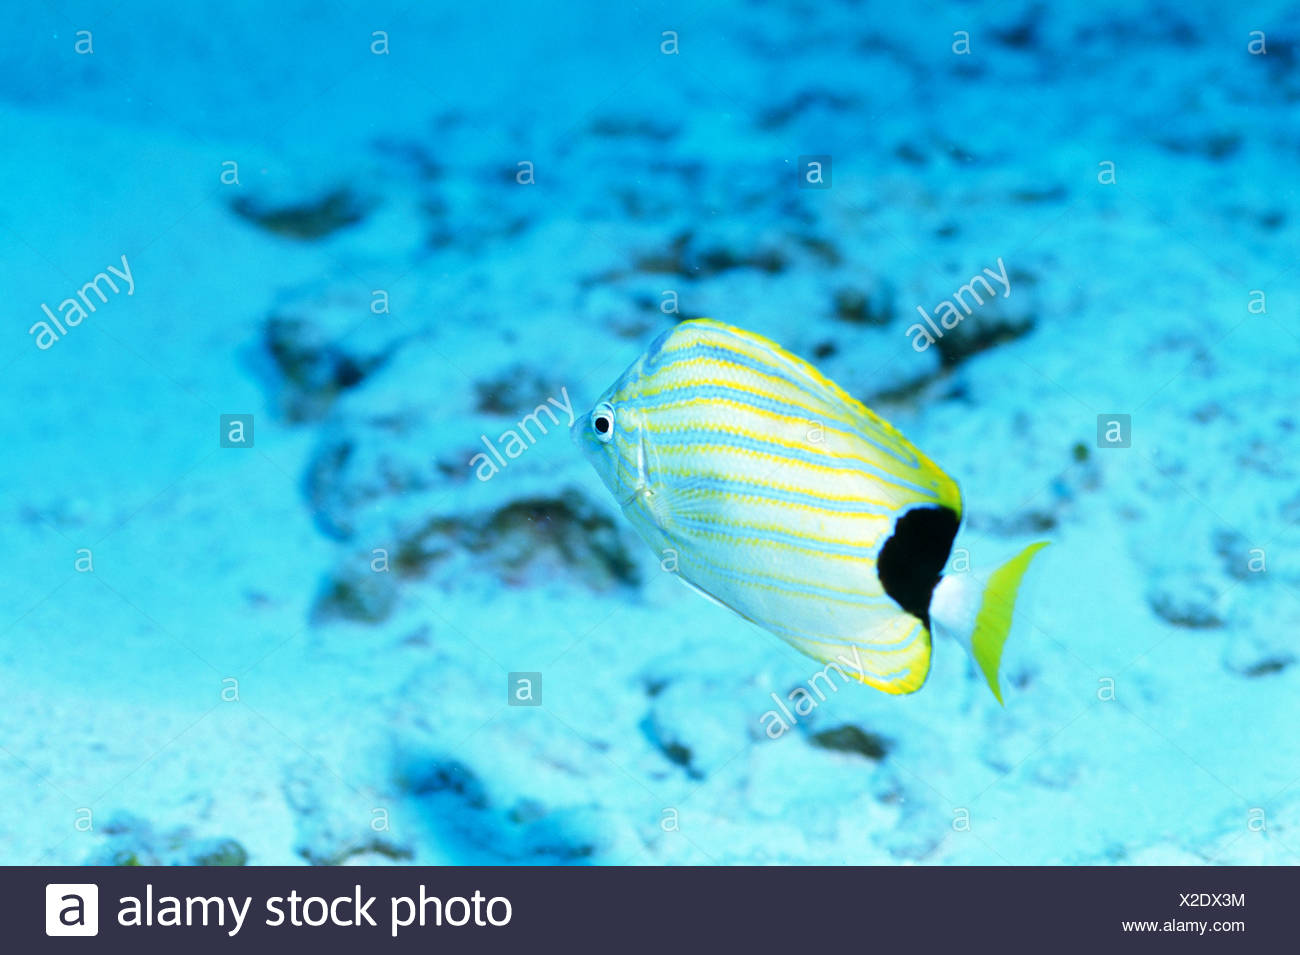 Congratulate, you Info on striped butterfly fish really